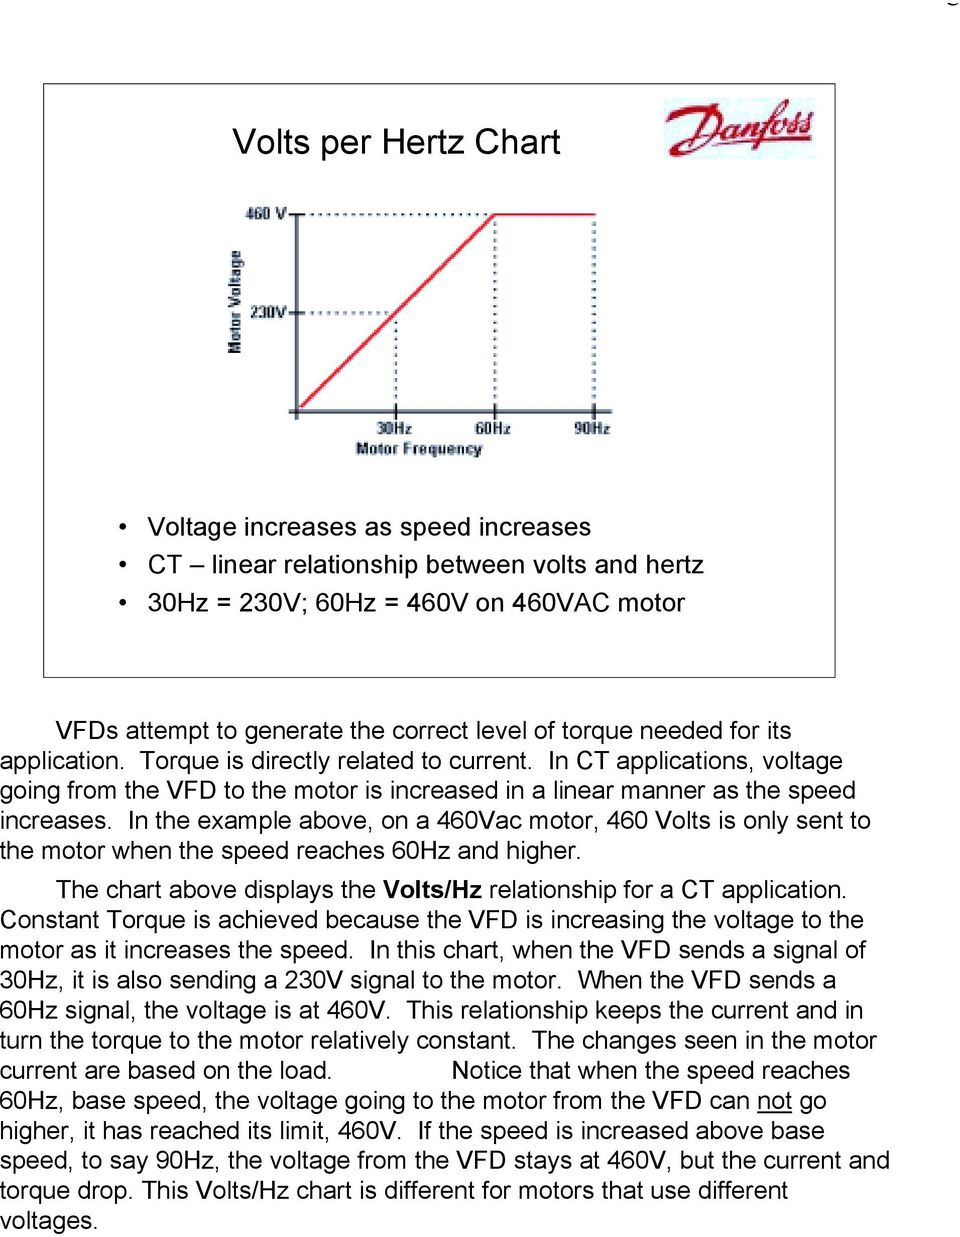 In the example above, on a 460Vac motor, 460 Volts is only sent to the motor when the speed reaches 60Hz and higher. The chart above displays the Volts/Hz relationship for a CT application.